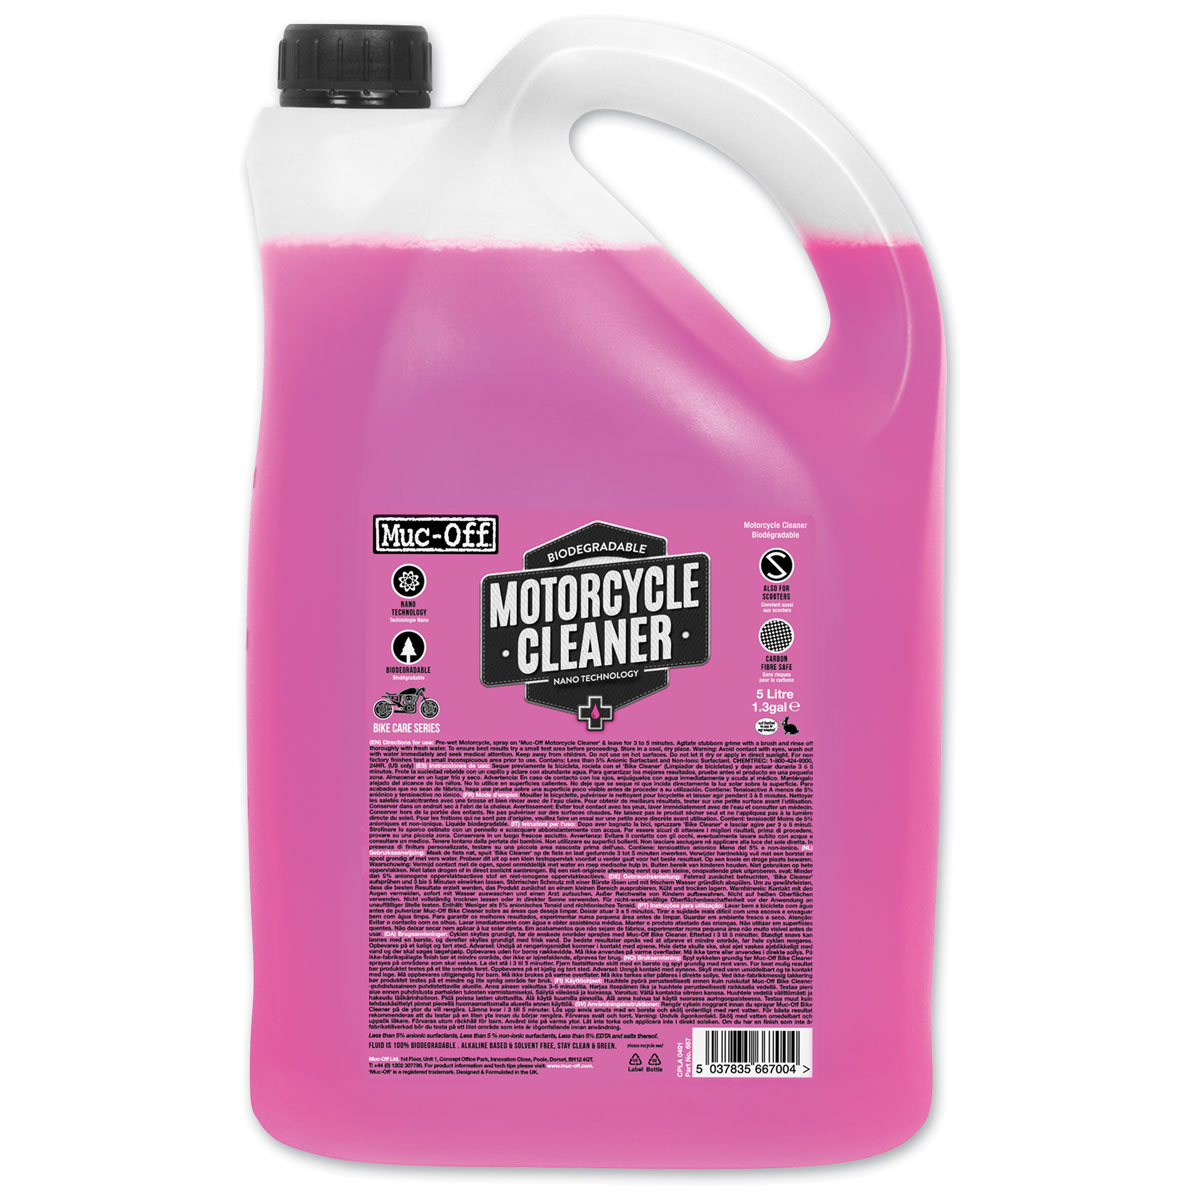 Muc-Off Nano Tech Motorcycle Cleaner 5 Liter